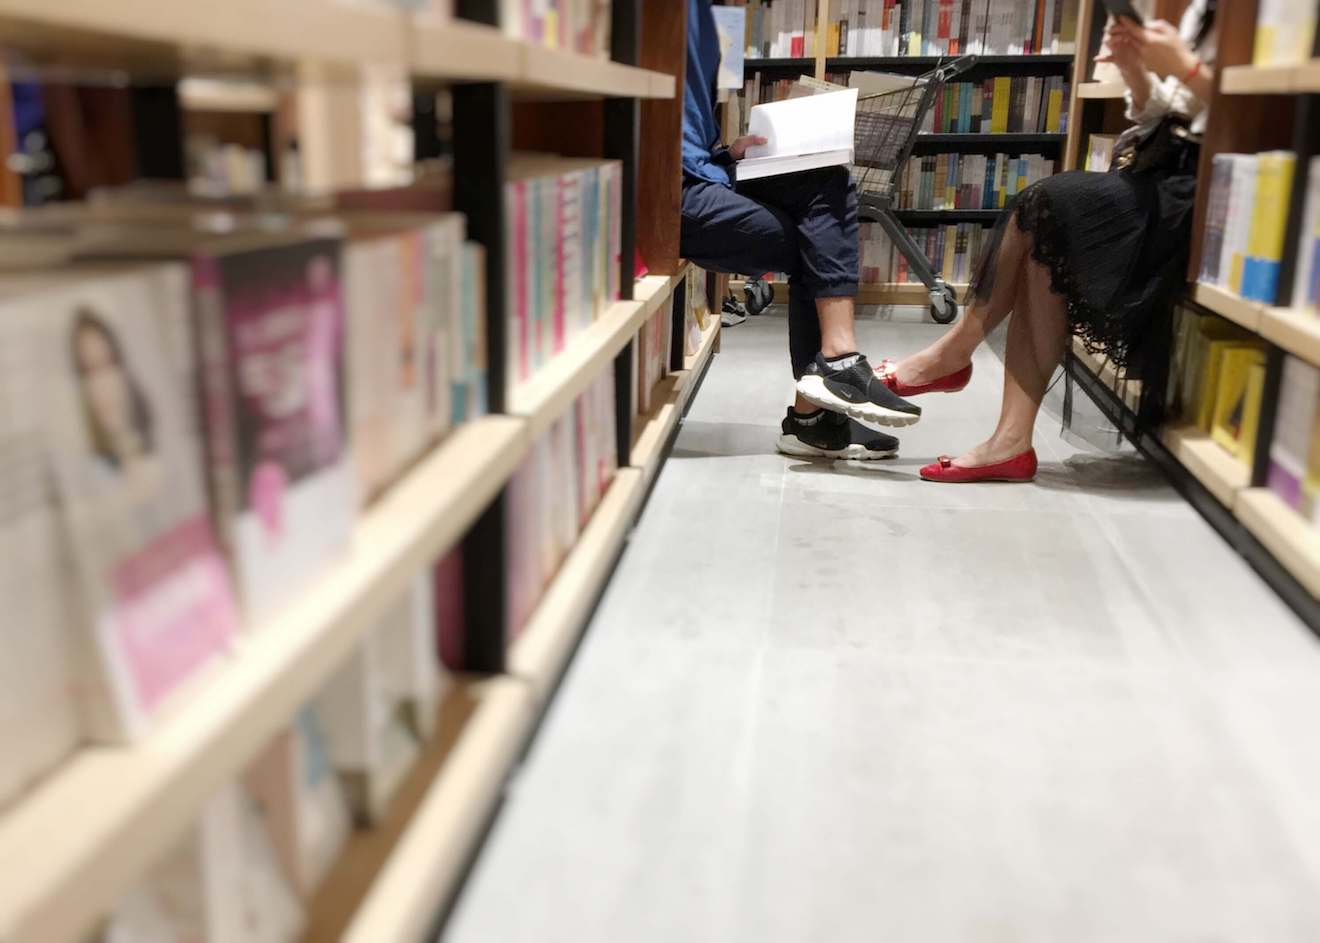 Bookstore patrons read books in the aisle